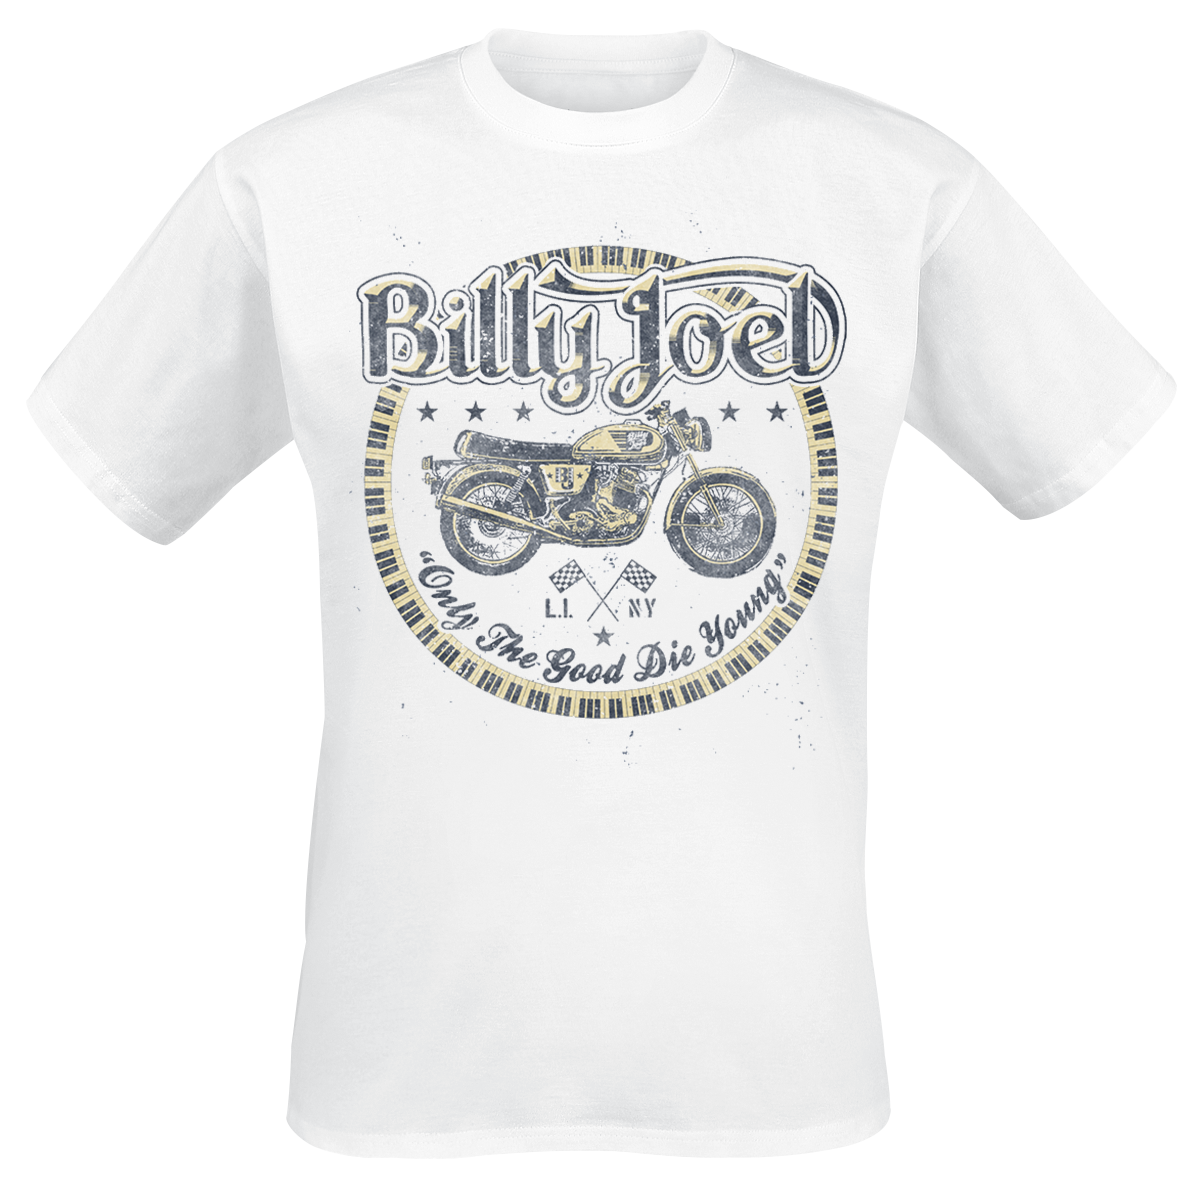 Billy Joel - Good Die Young - T-Shirt - white image